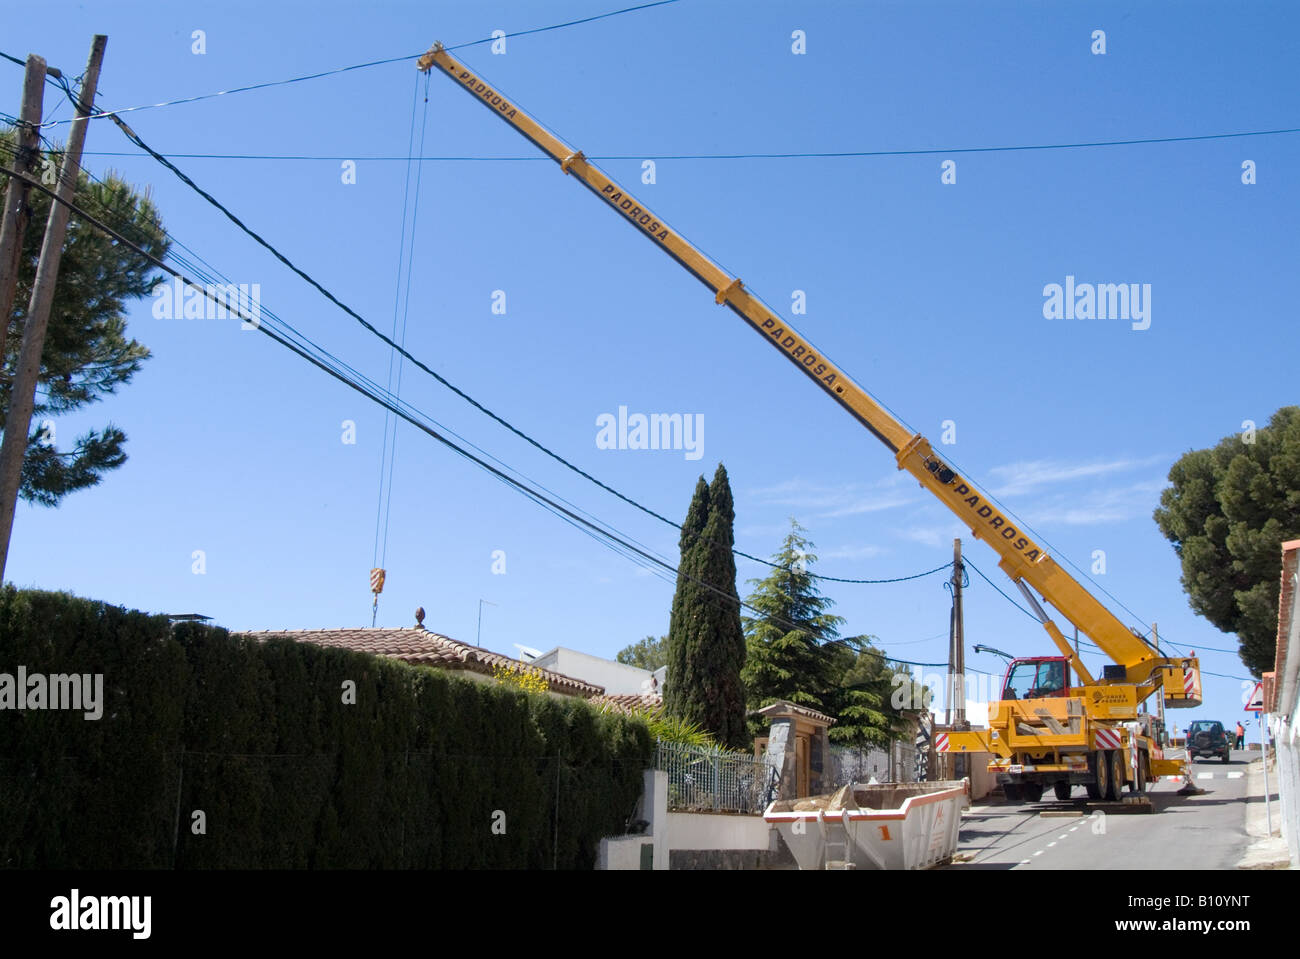 Tractor Lift Arm Extension : Mobile crane tuck lorry lifting equipment heavy lift arm